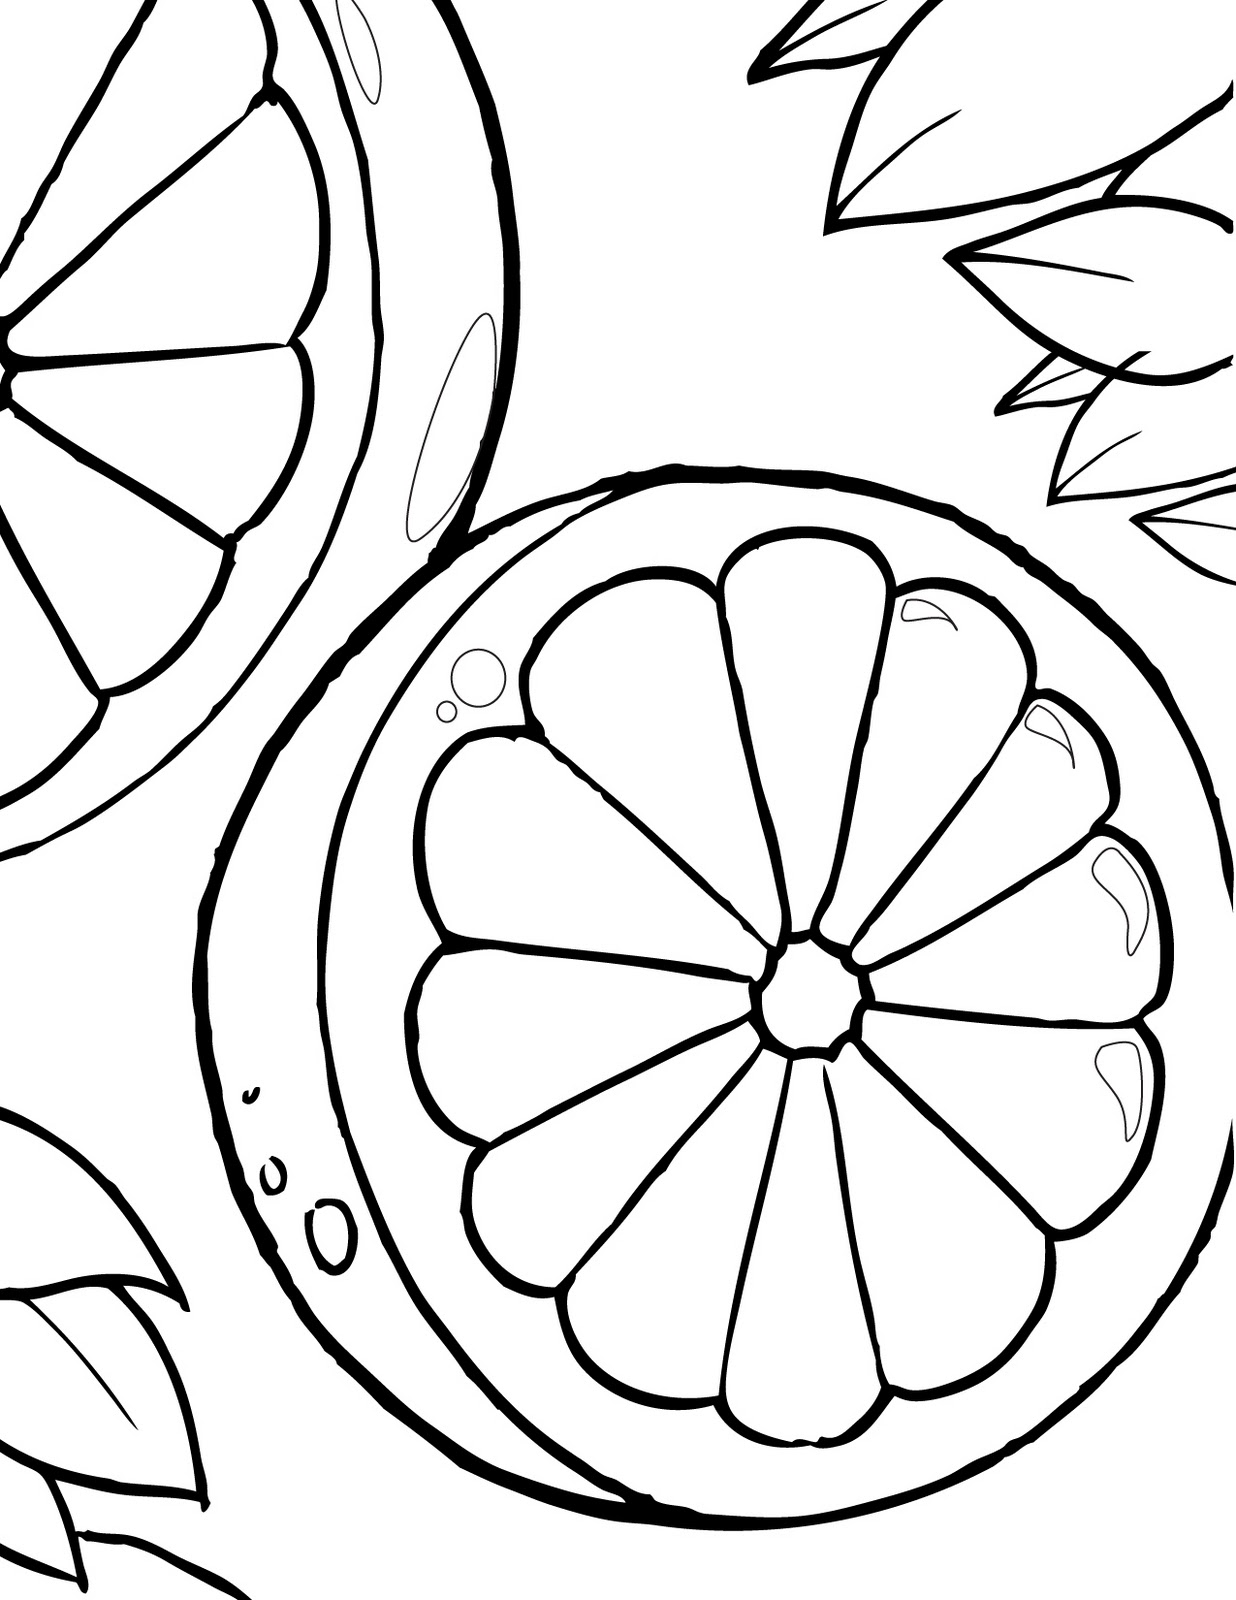 coloring pages orange - photo#36